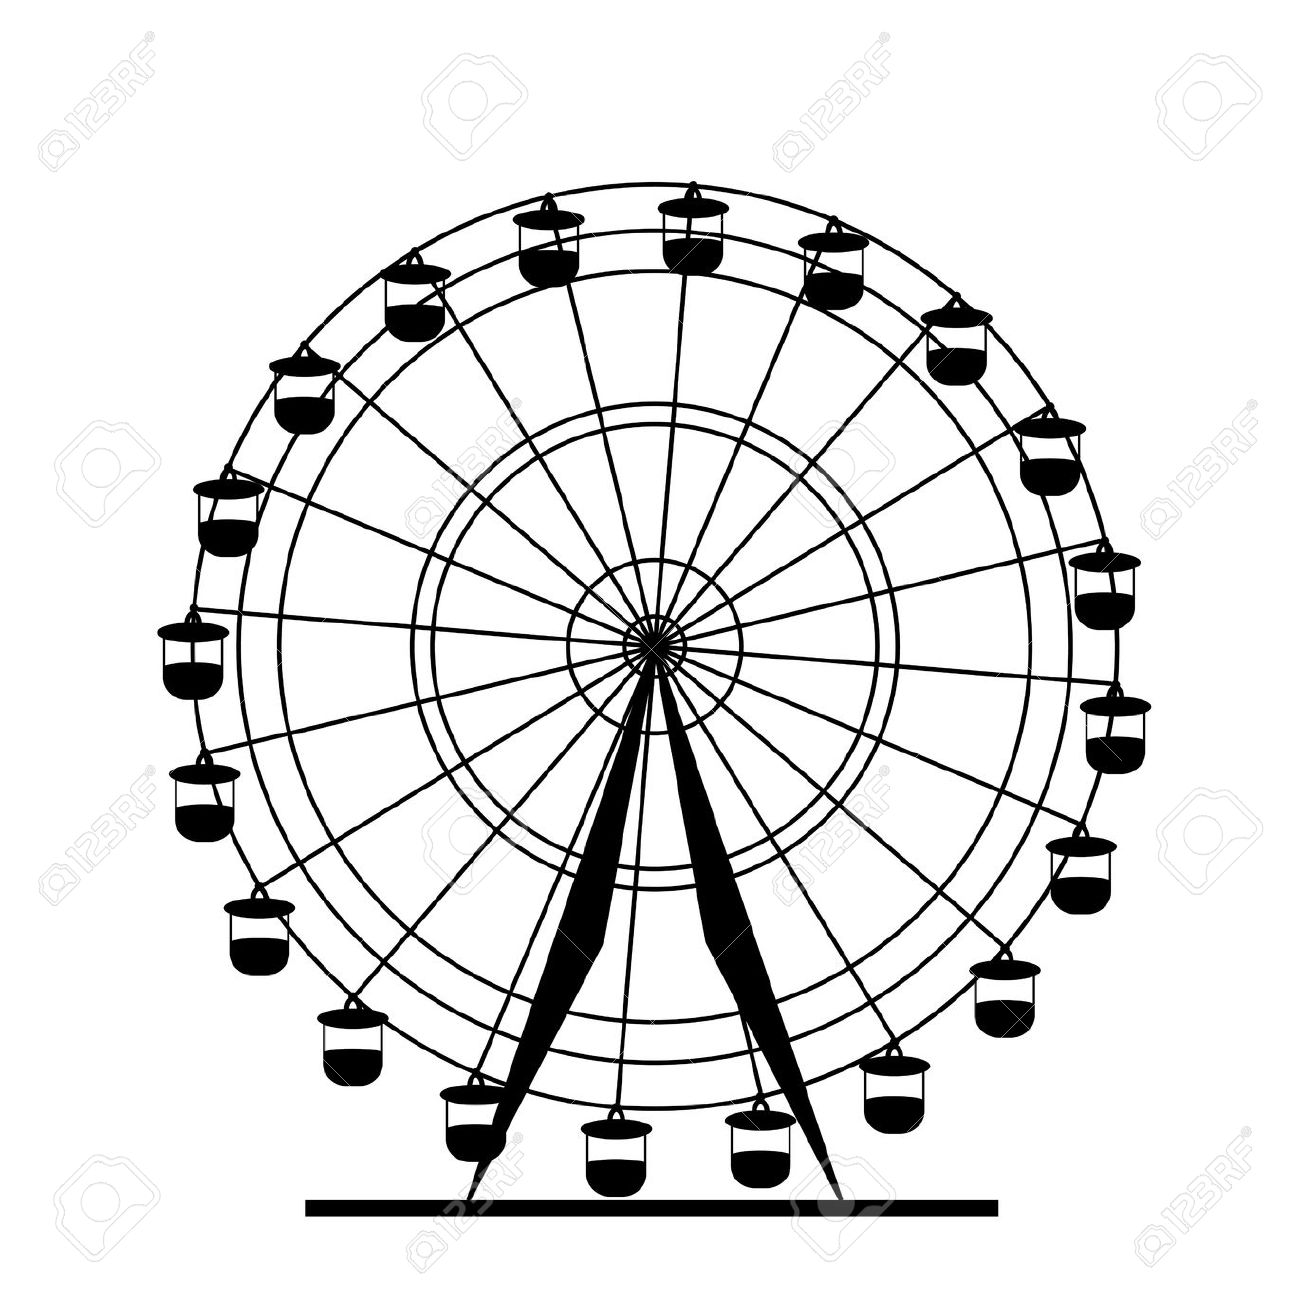 Ferris wheel clipart black and white.